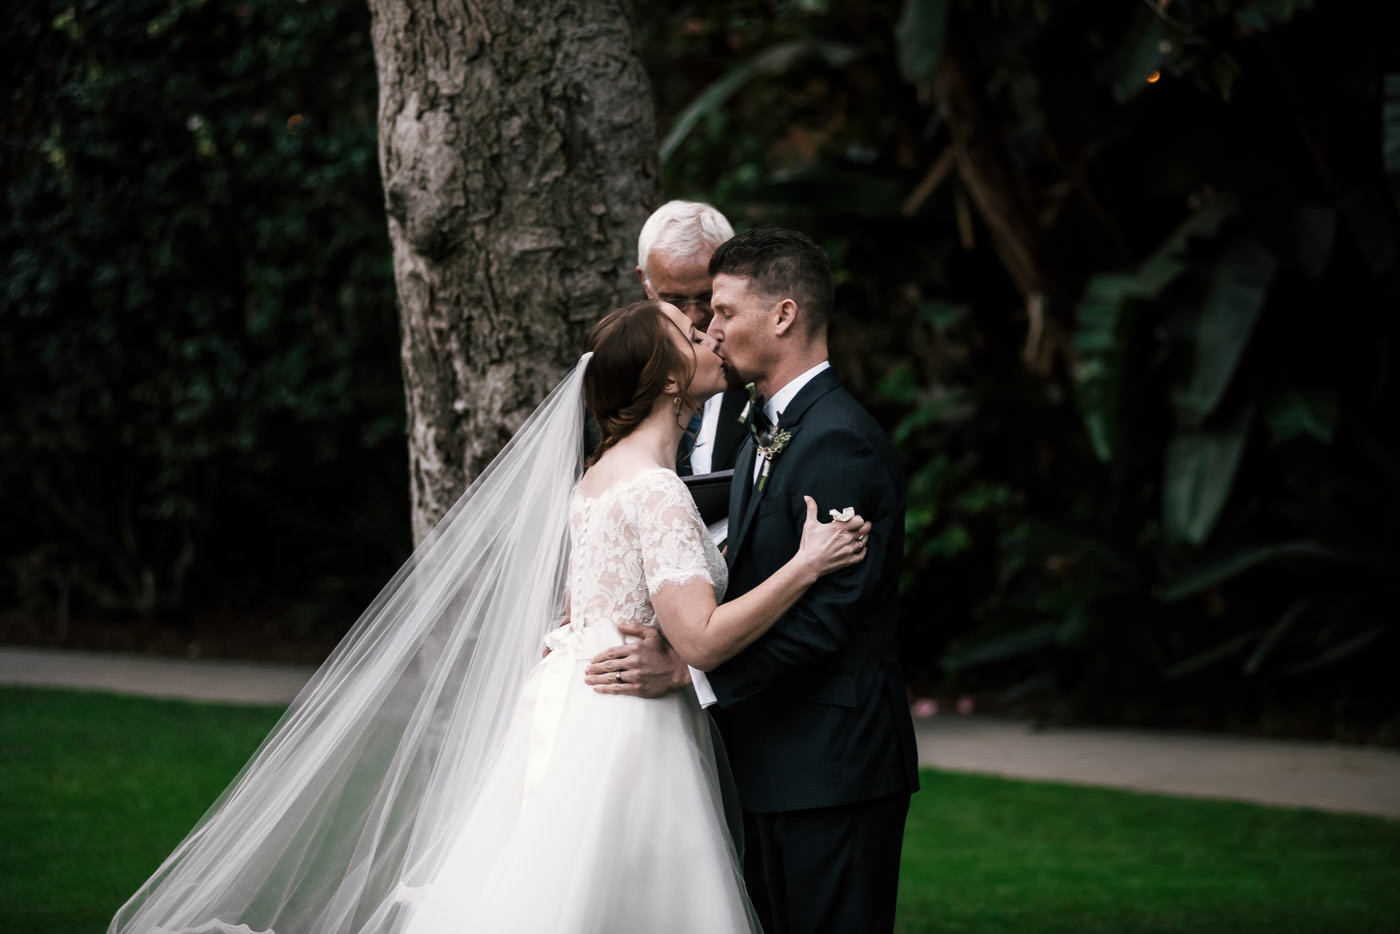 Beautiful first kiss at a romantic wedding in Pasadena.